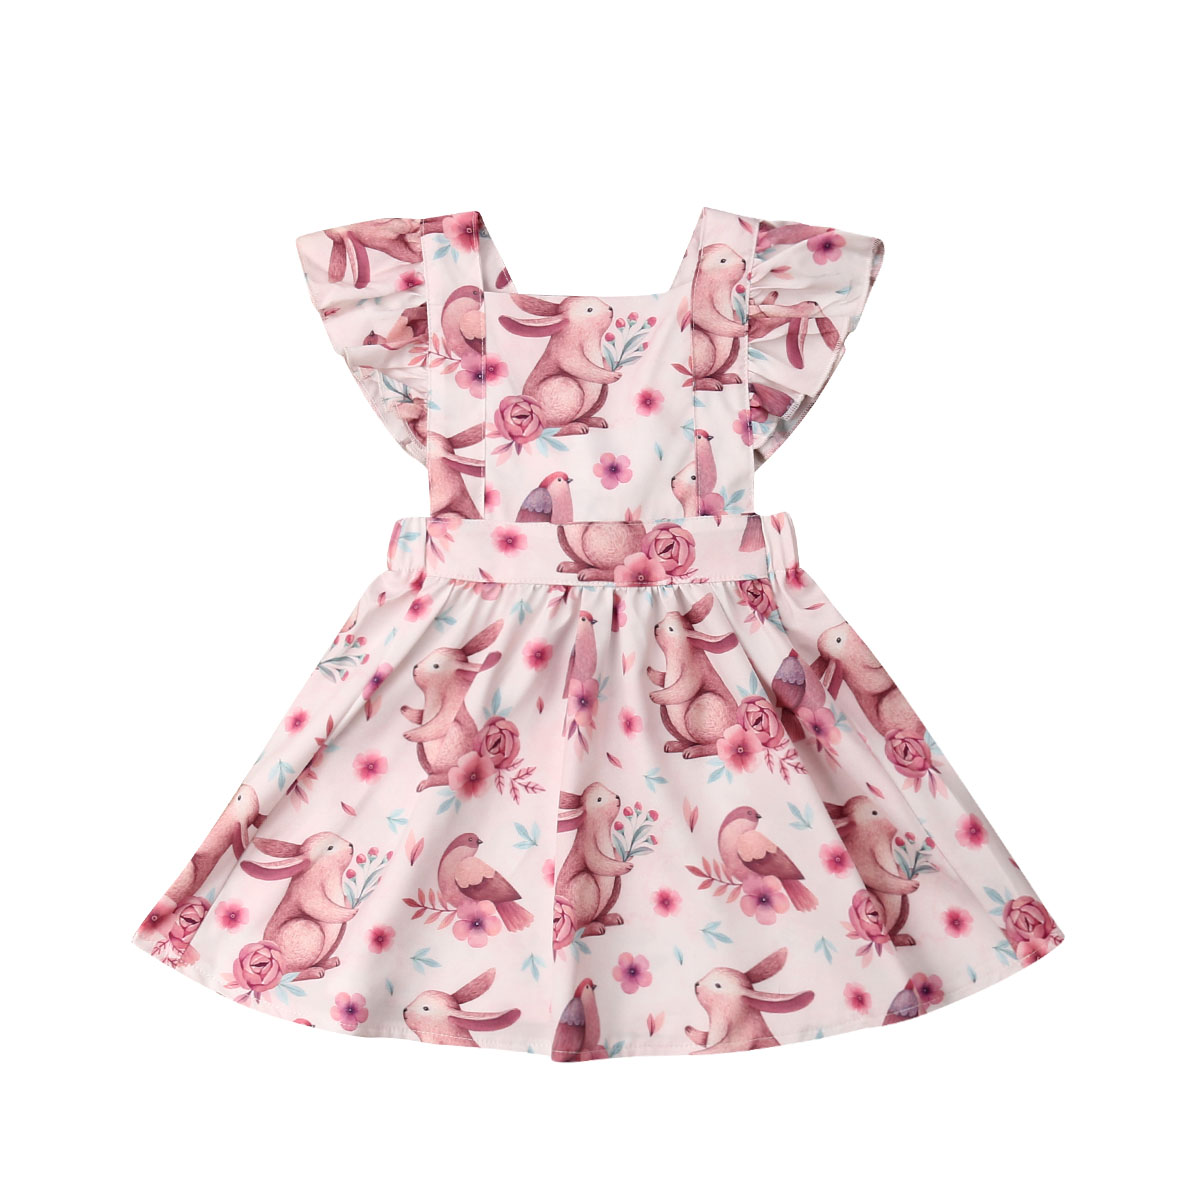 Summer New Toddler Kids Baby Girls Dinosaur Printed Dresses Sleeveless Lovely Dress Outfits Infant Clothes Girls' Clothing Mother & Kids